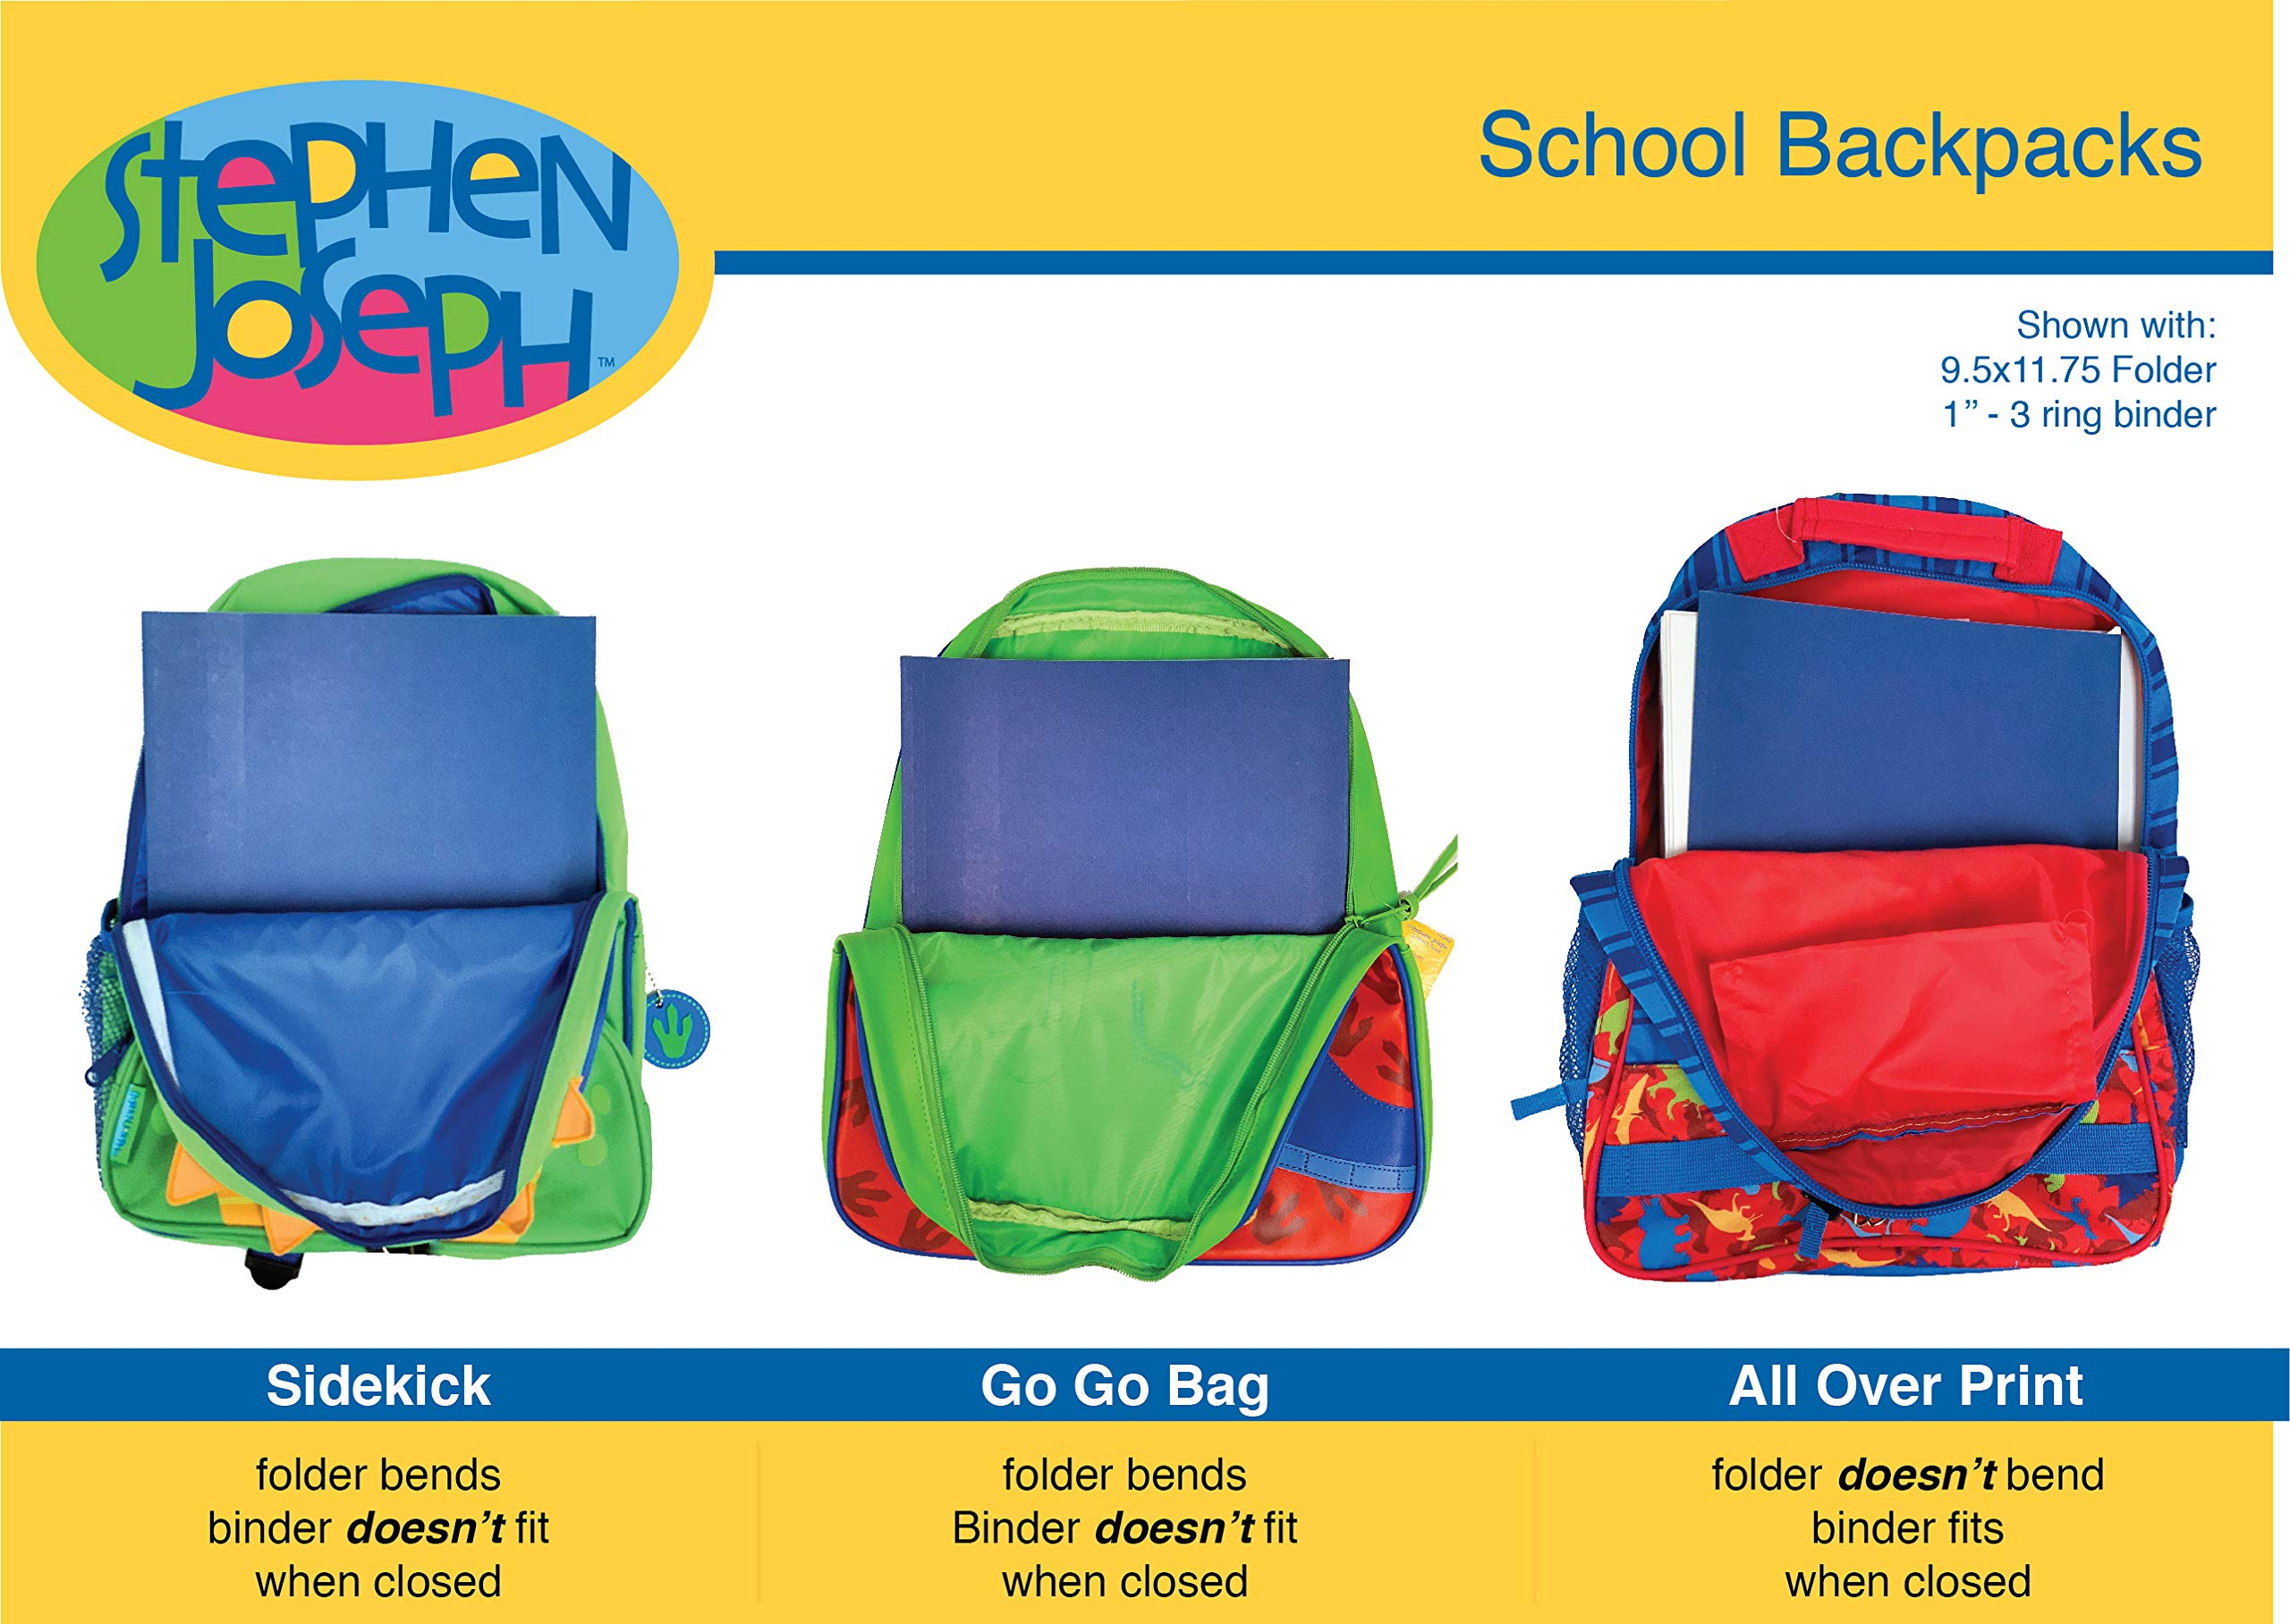 ee2c7e26de Stephen Joseph Sidekick Backpack